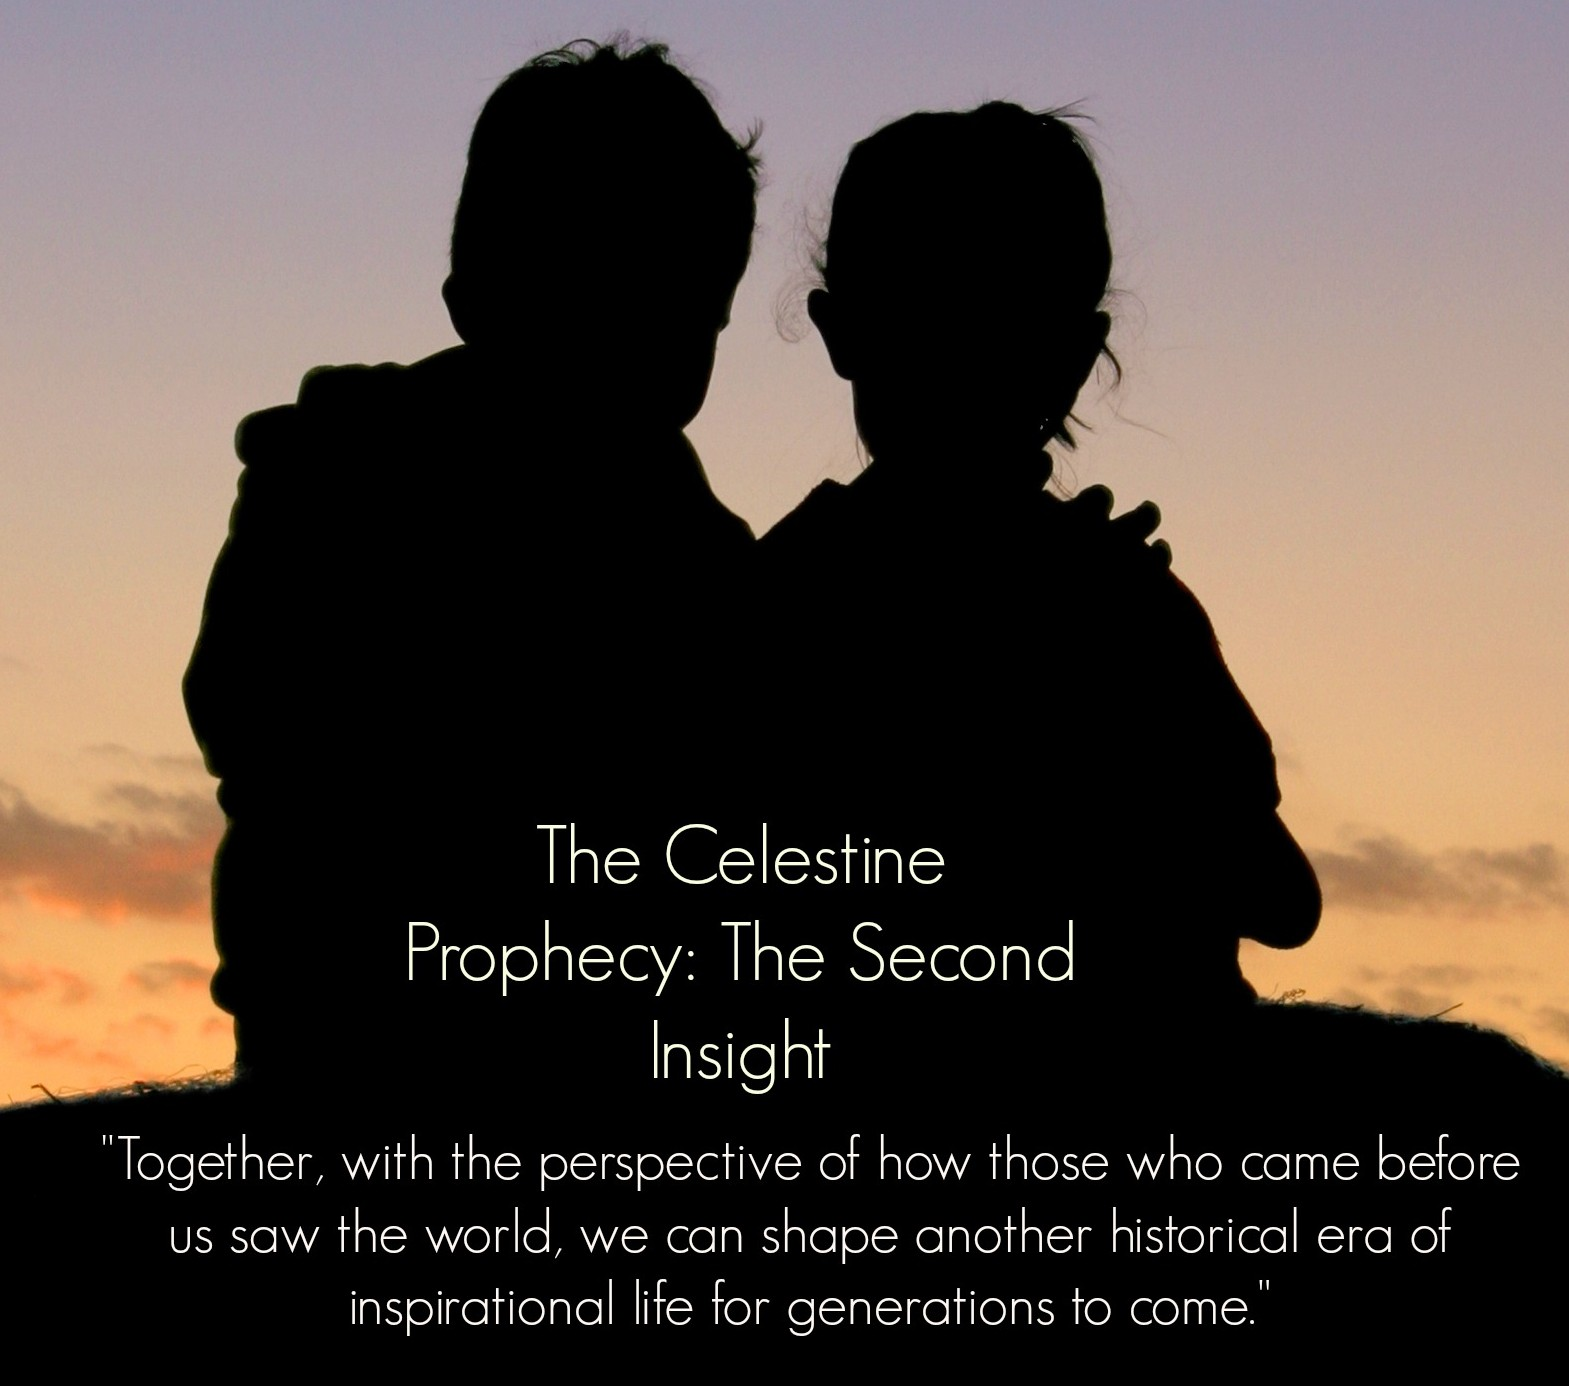 The Celestine Prophecy: Second Insight Experience Study